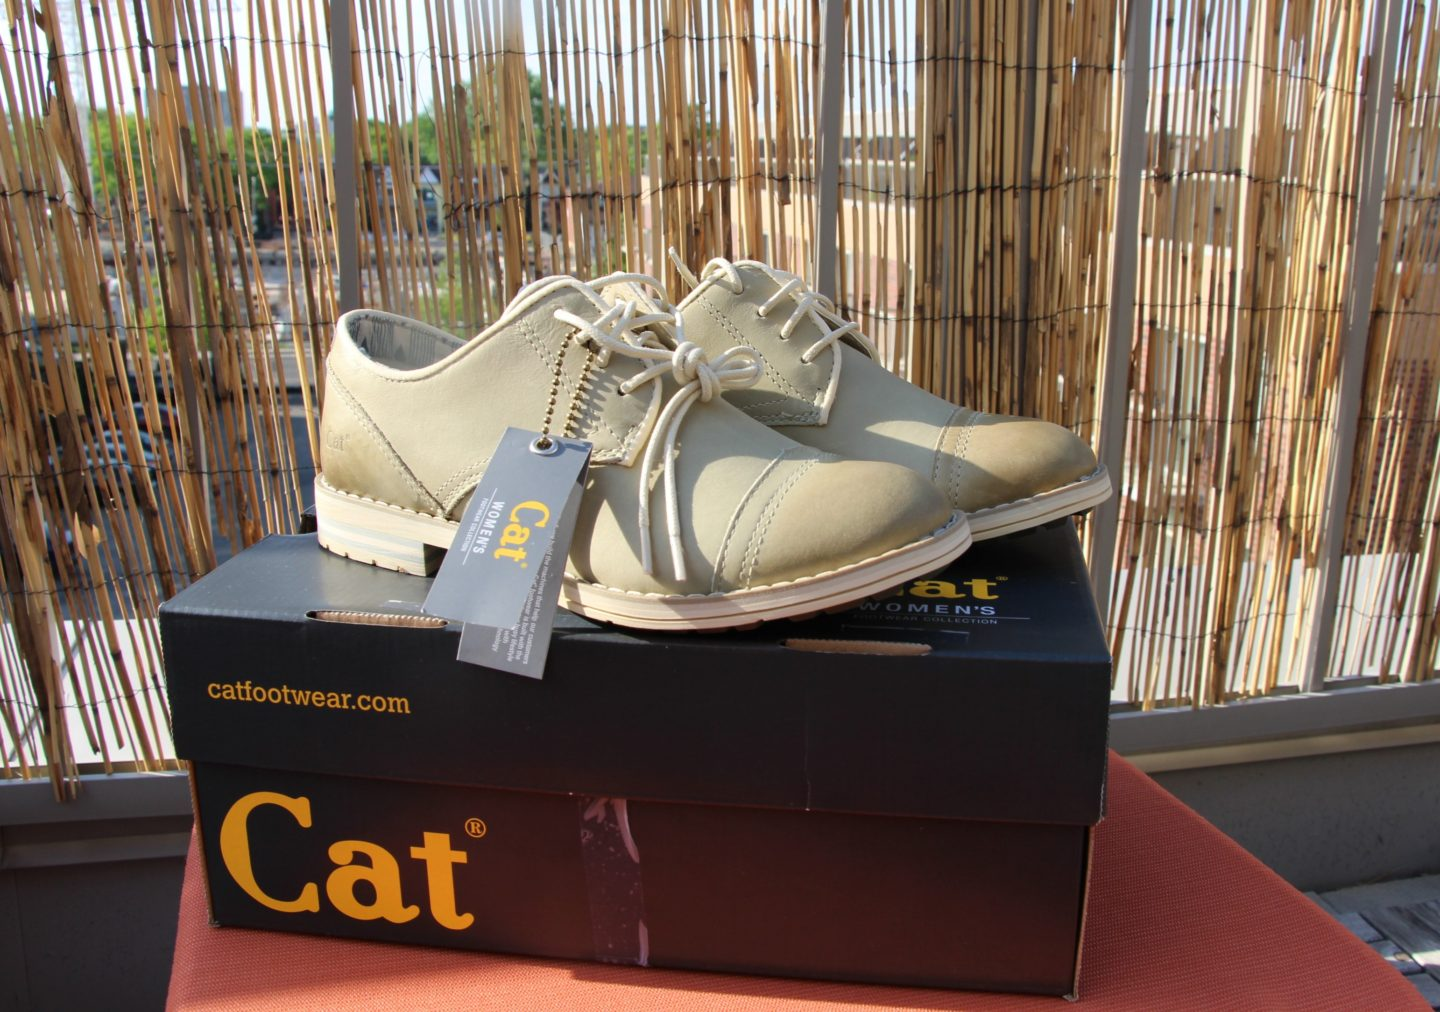 Cat Footwear SS 2014 | New Shoes For Me and YOU!